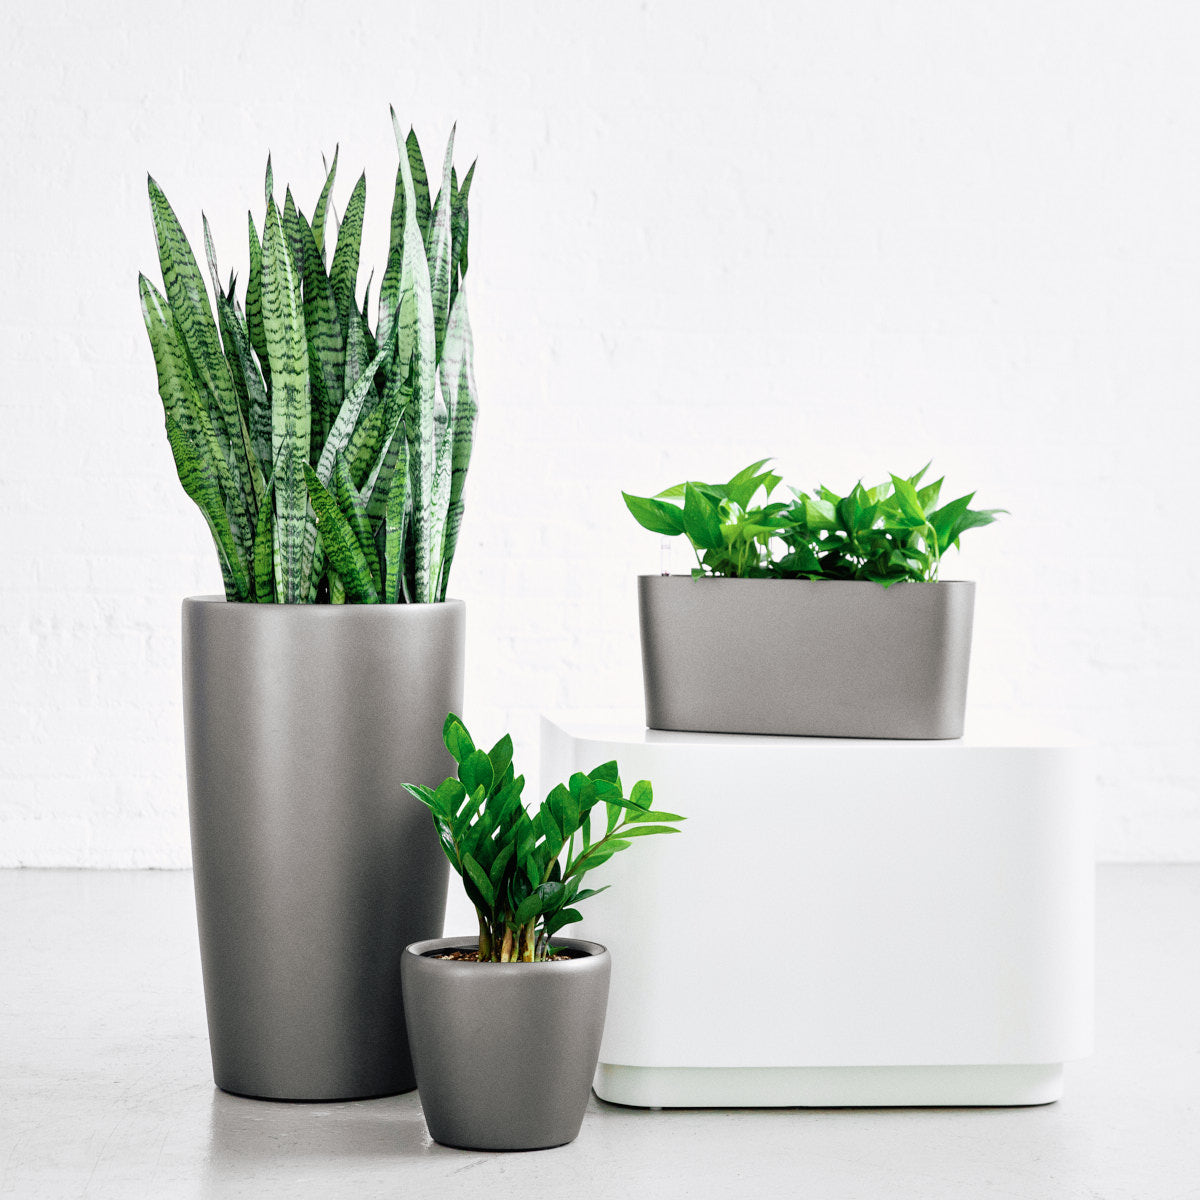 Houseplant bundle for beginners - charcoal metallic